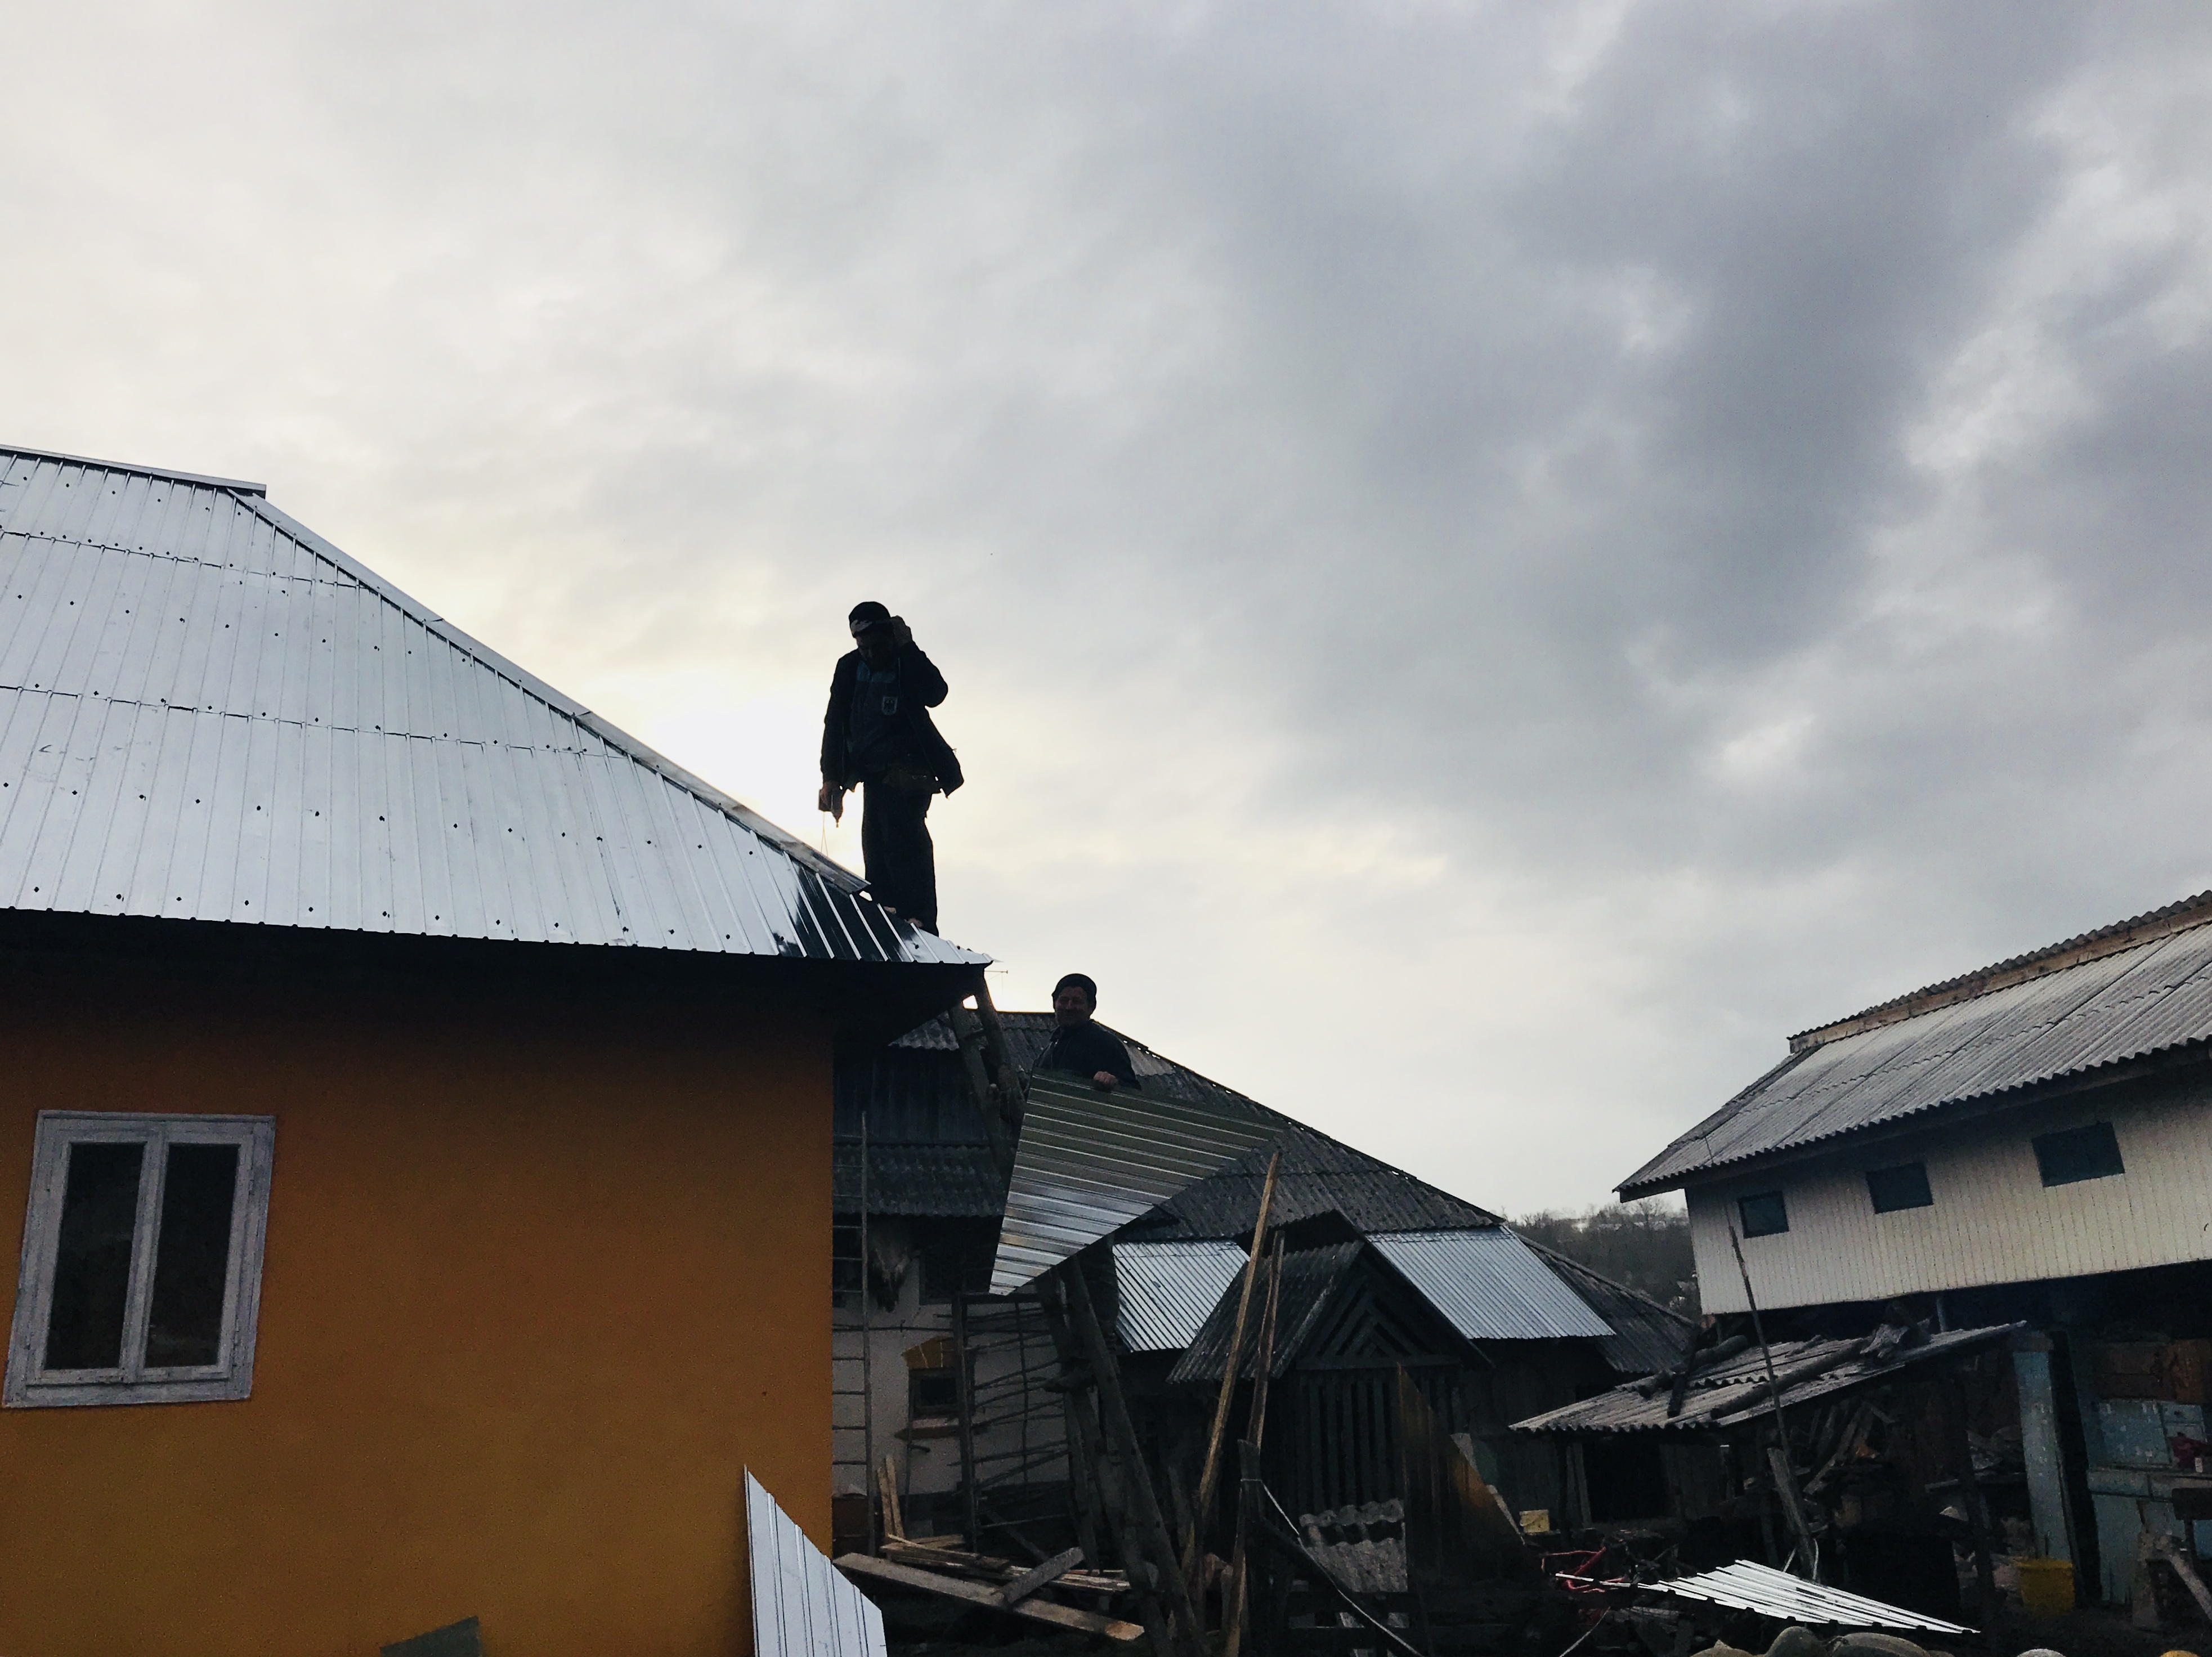 Working on the roof in Romania